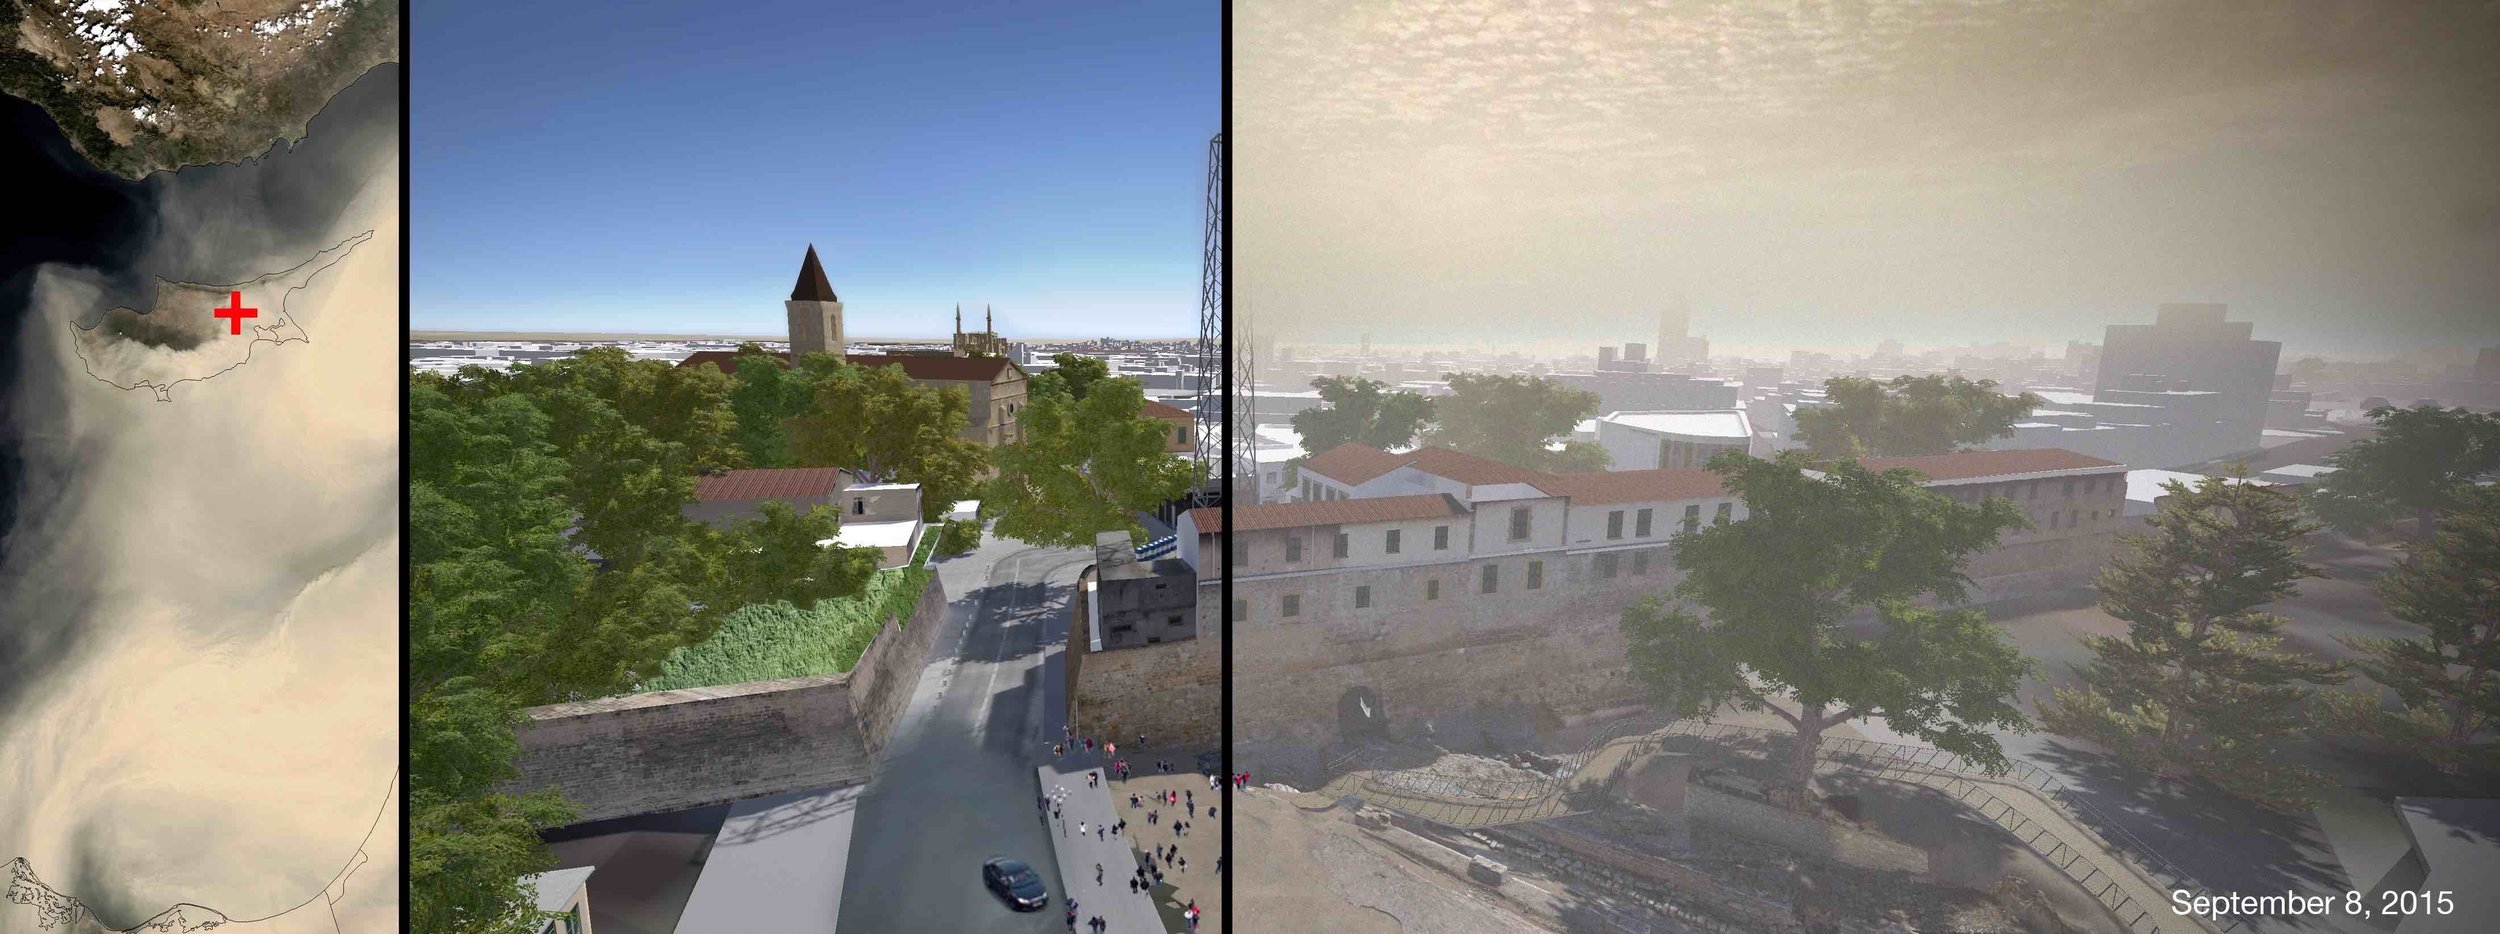 Visualization within the historical city center of the extreme dust event that took place on September 8, 2015 as seen in virtual reality using the Nicosia simulation model of The Cyprus Institute.